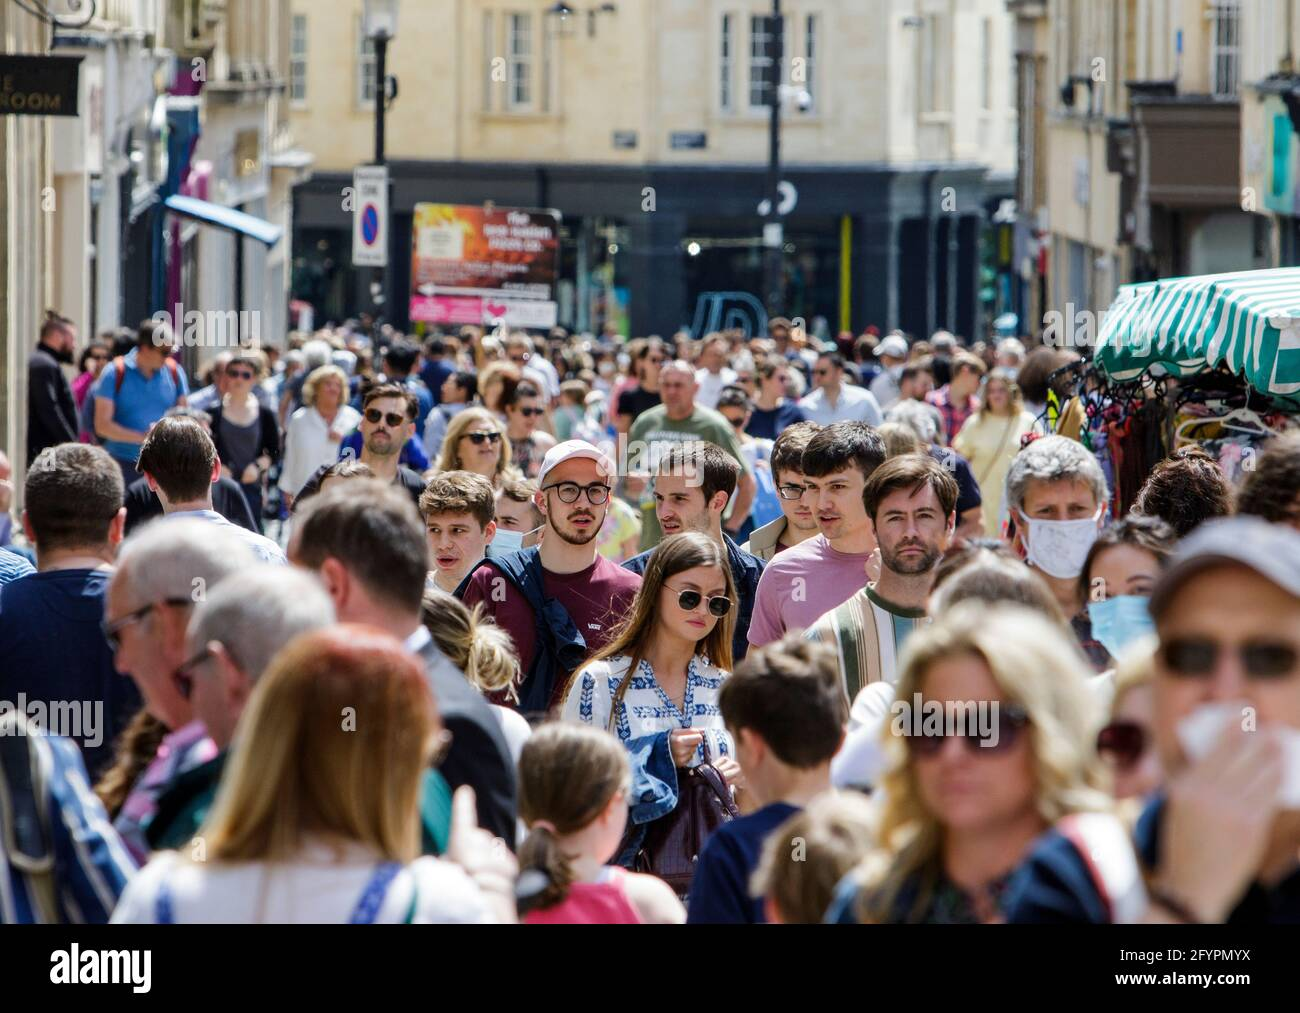 Bath, Somerset, UK. 29th May, 2021. Crowds of shoppers are pictured on the streets of Bath as people make the most of the bank holiday weekend sunshine. Credit: Lynchpics/Alamy Live News Stock Photo